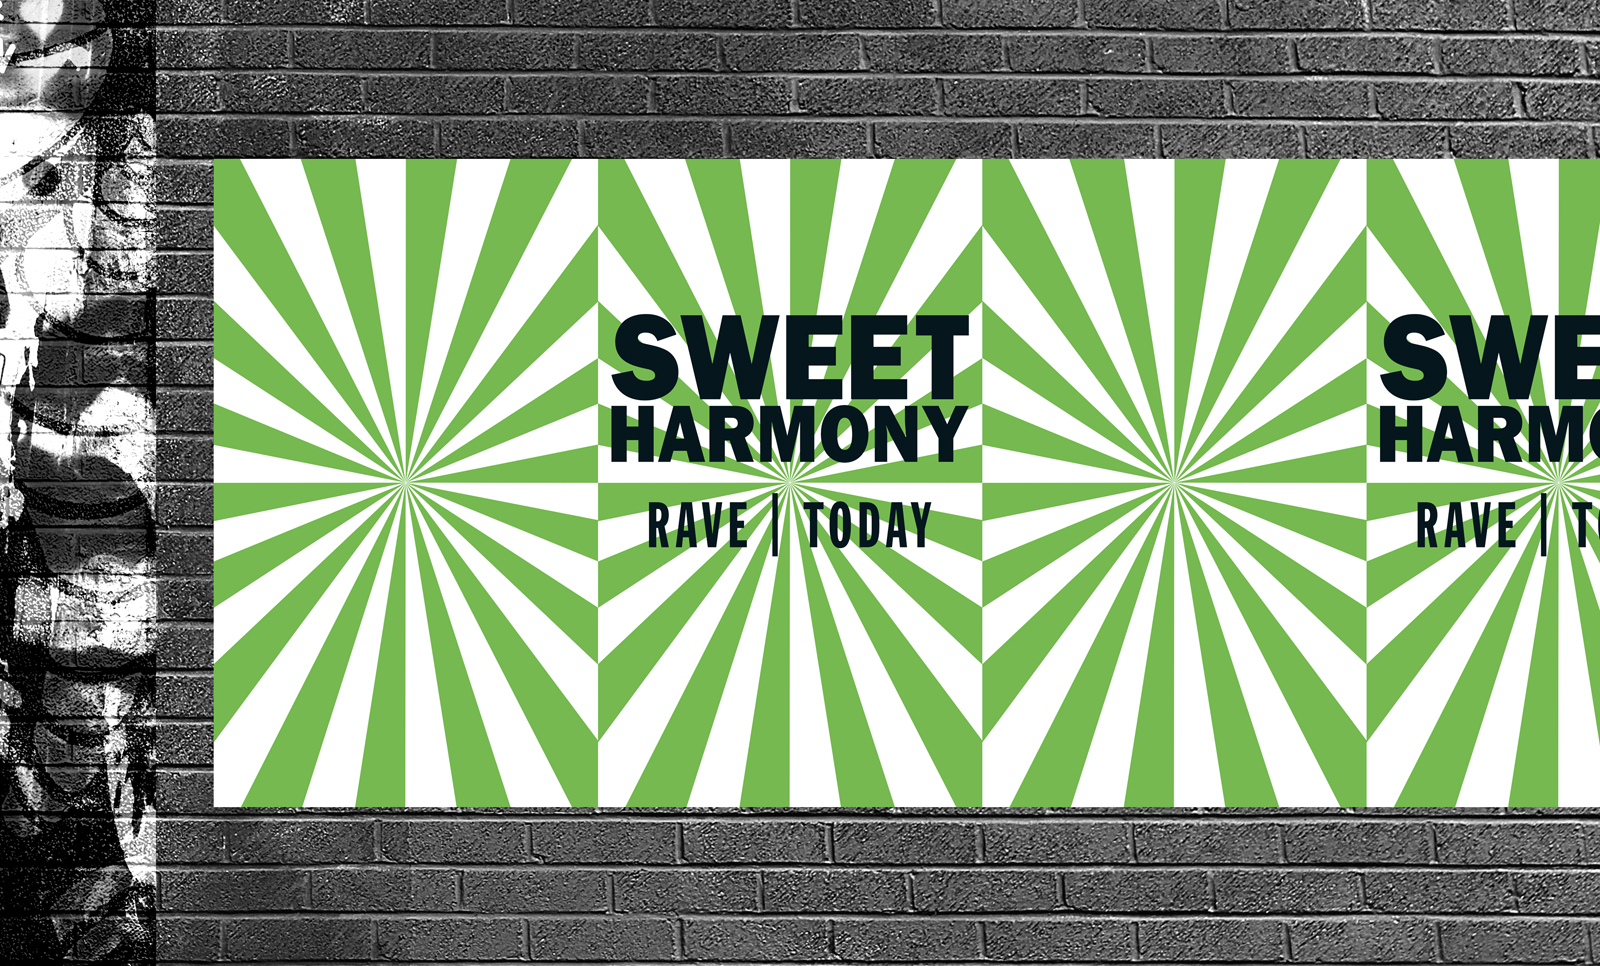 Sweet-Harmony-Saatchi-Gallery-Rave-Today-Teaser-48Sheet-James-Lee-Duffy.jpg